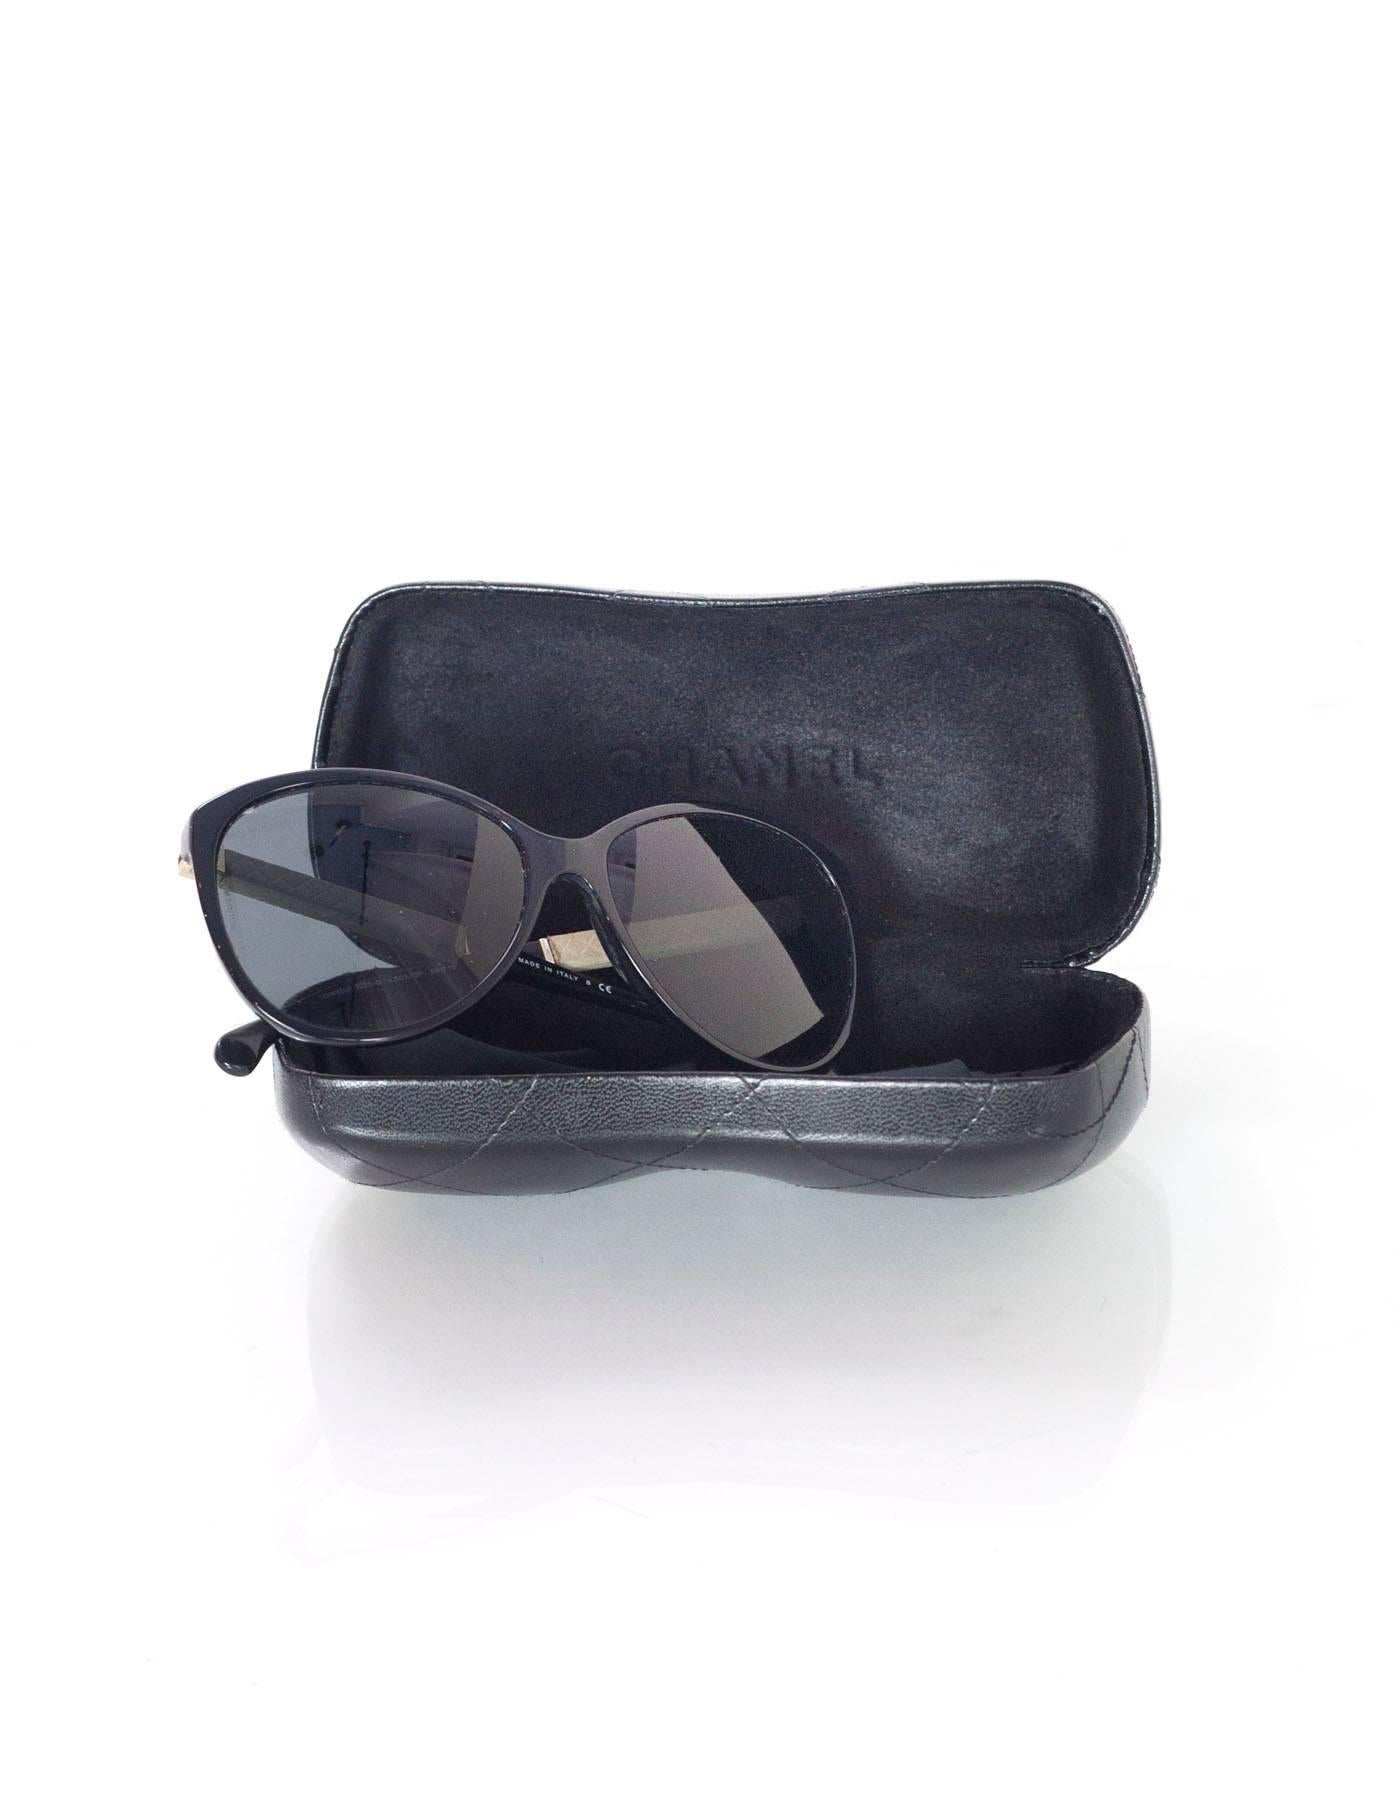 5a37a2ff00f48 Chanel Black Cat Eye Sunglasses With Quilting For Sale at 1stdibs